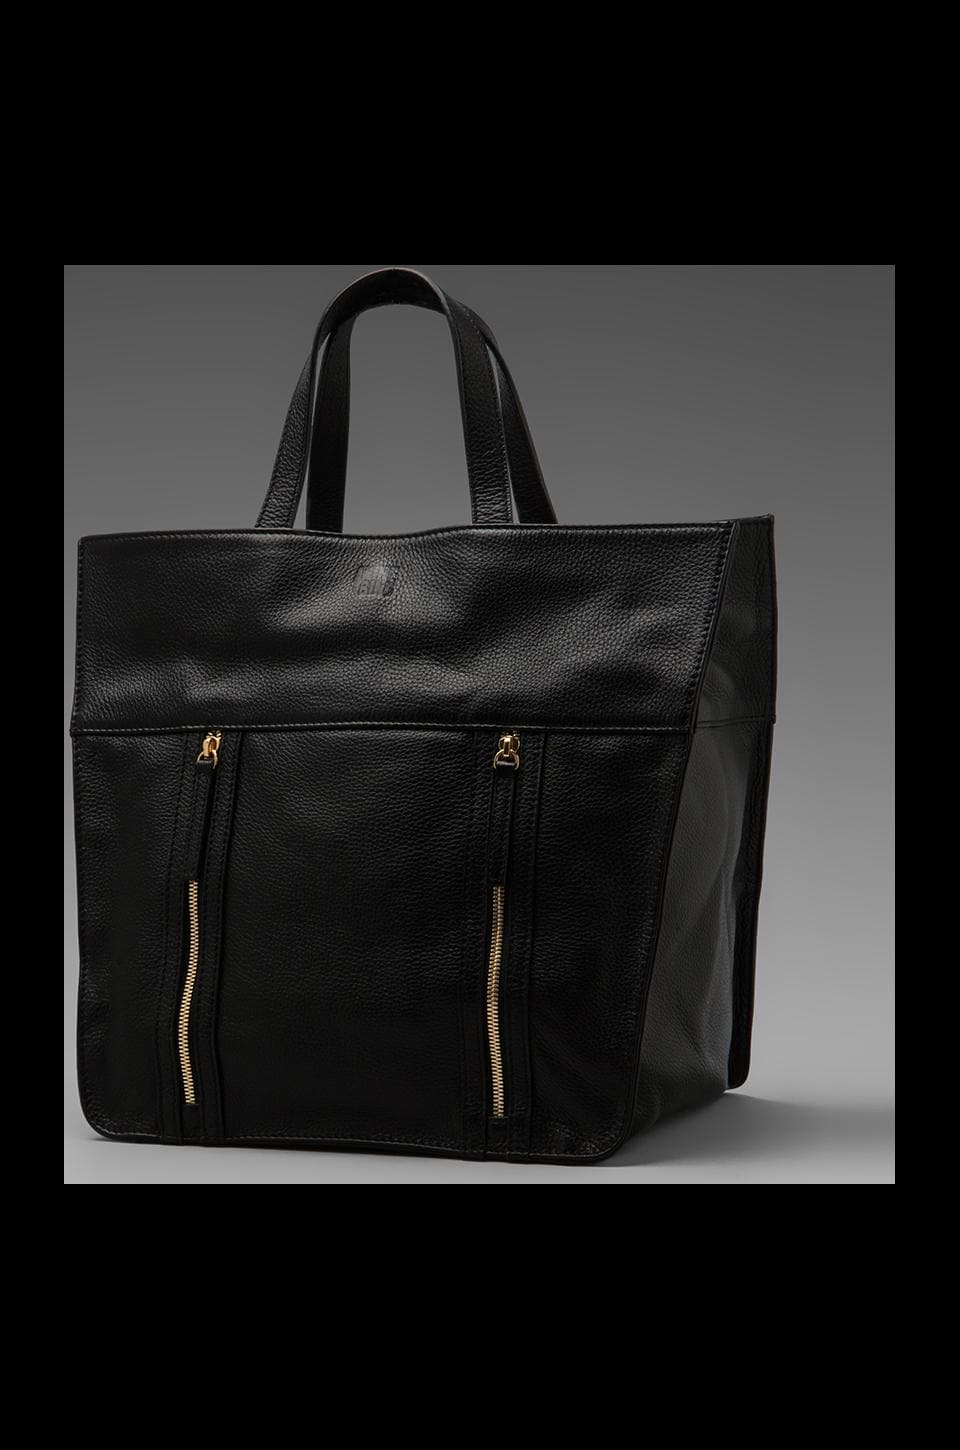 ANINE BING Leather Tote in Black/Gold